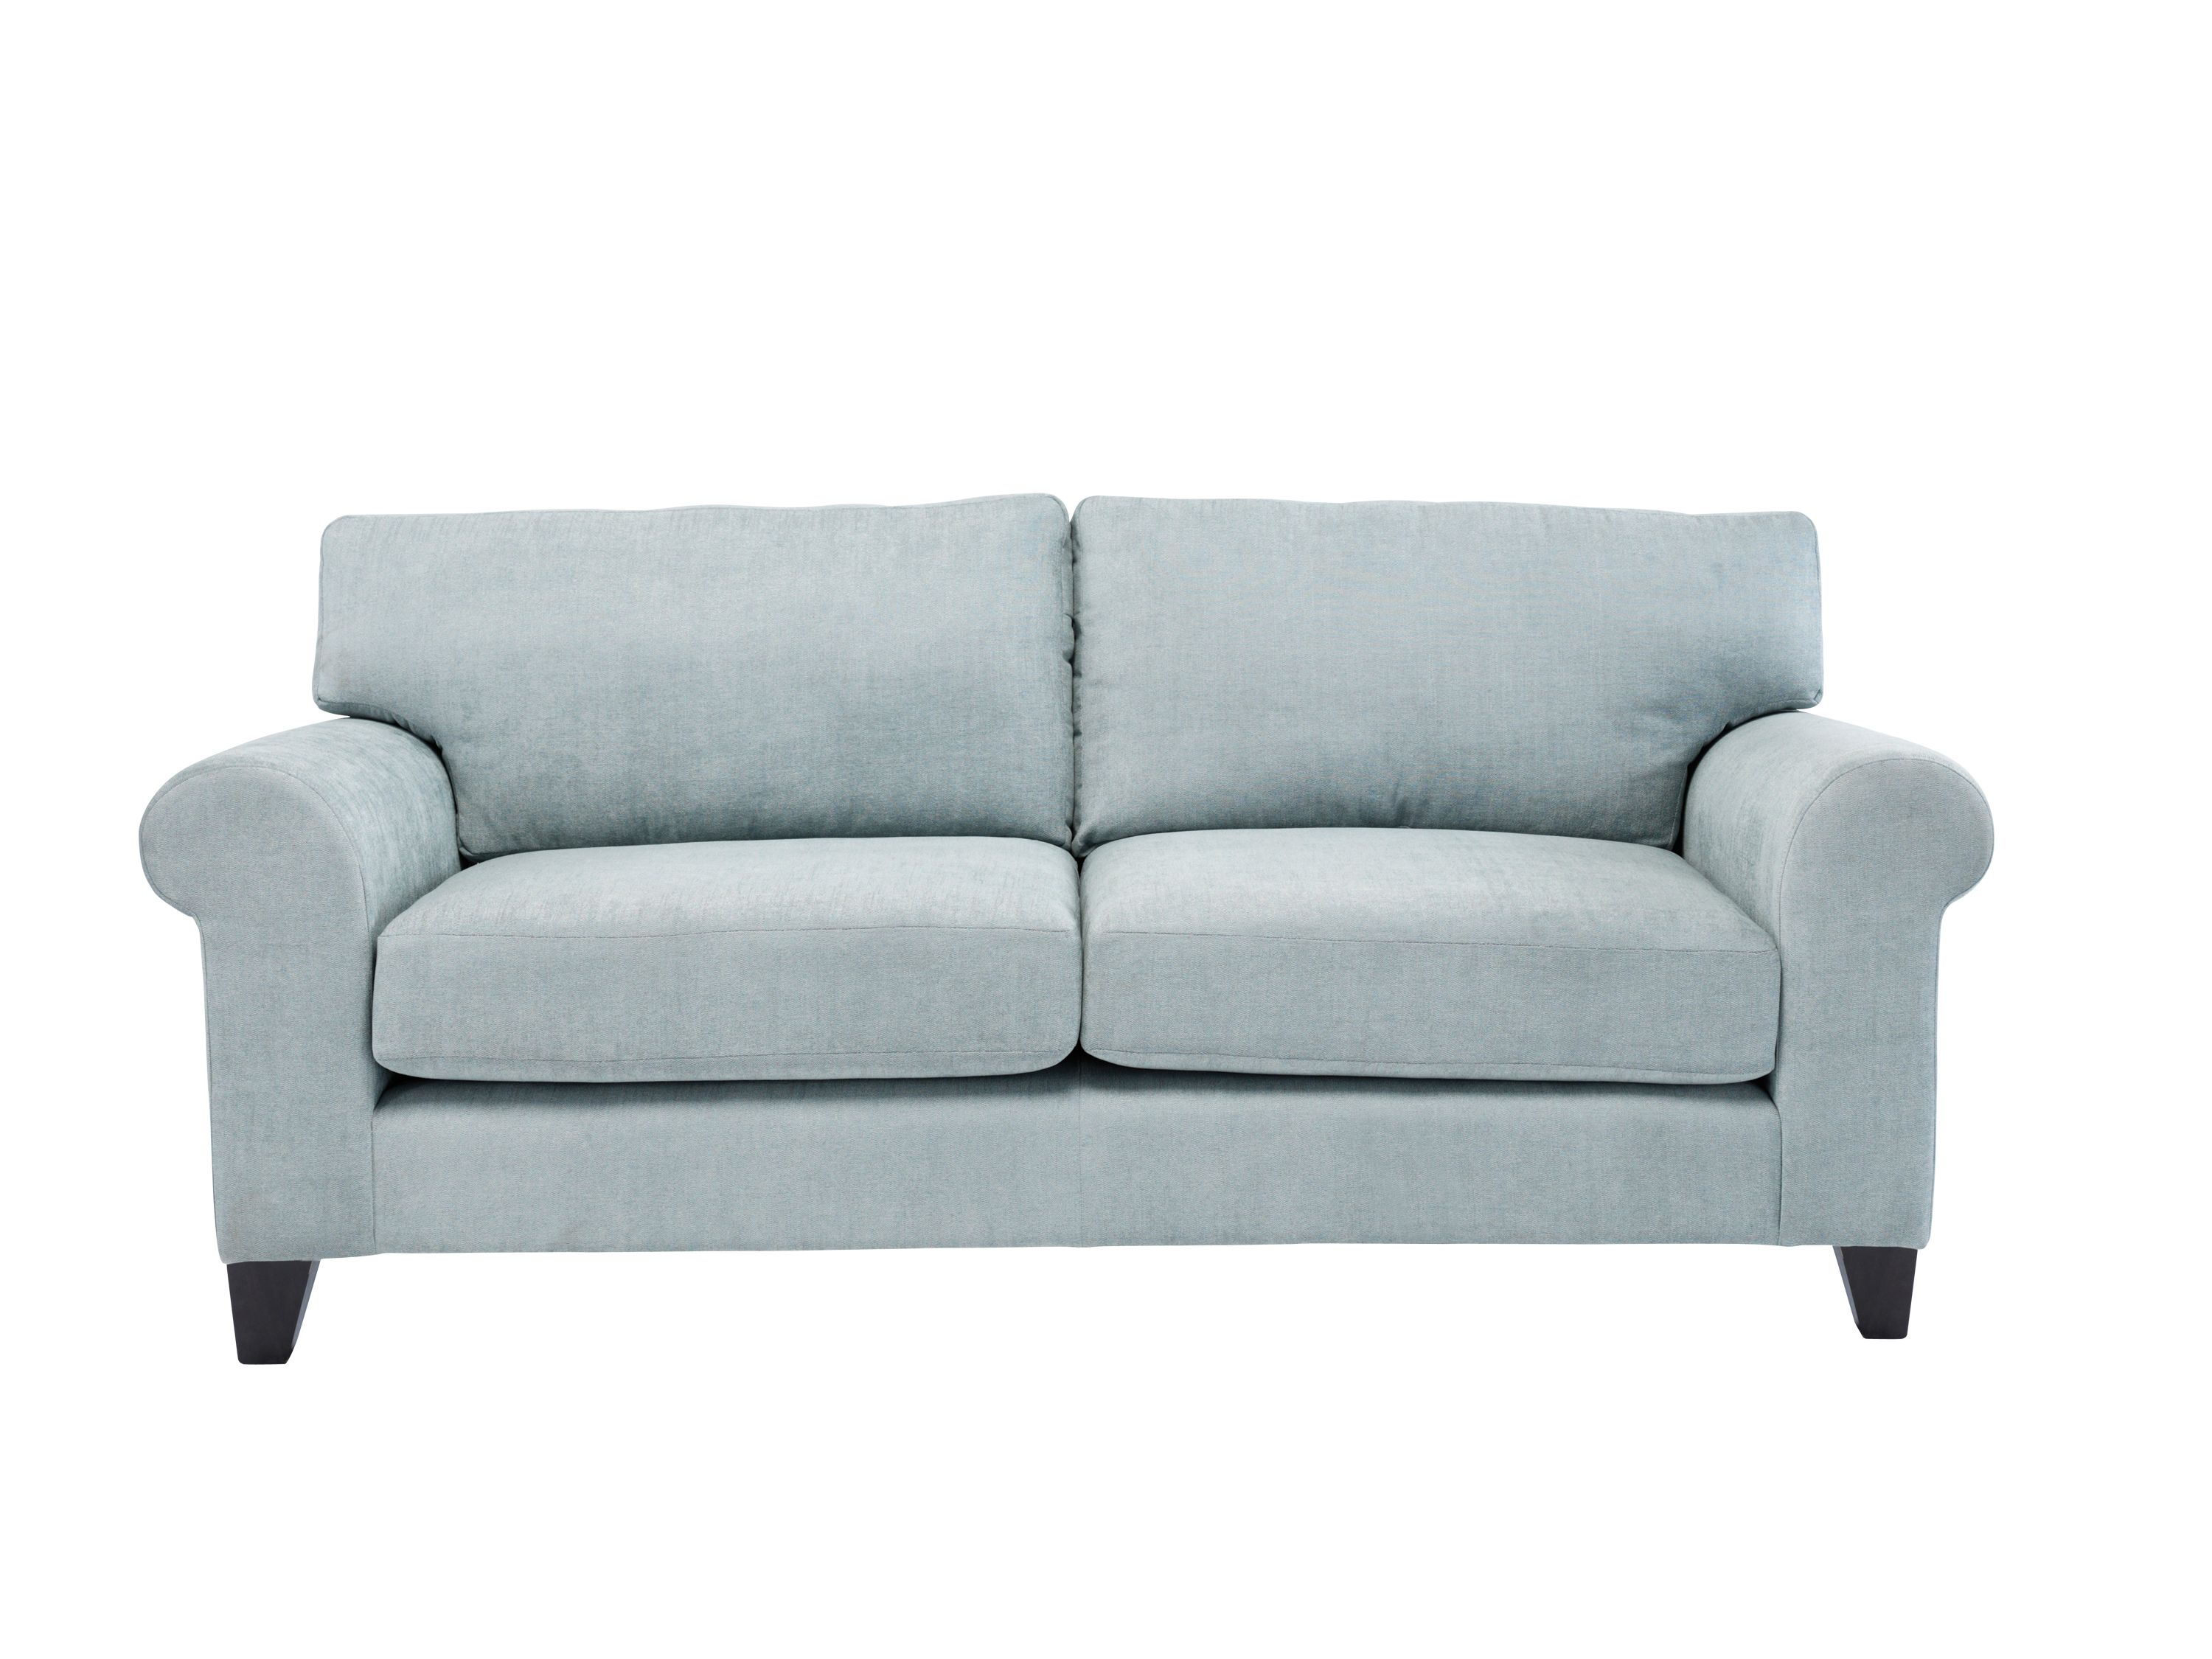 Whittlebury 3 Seat Sofa Maywood Duck Egg Colour #Sofas #Livingrooms